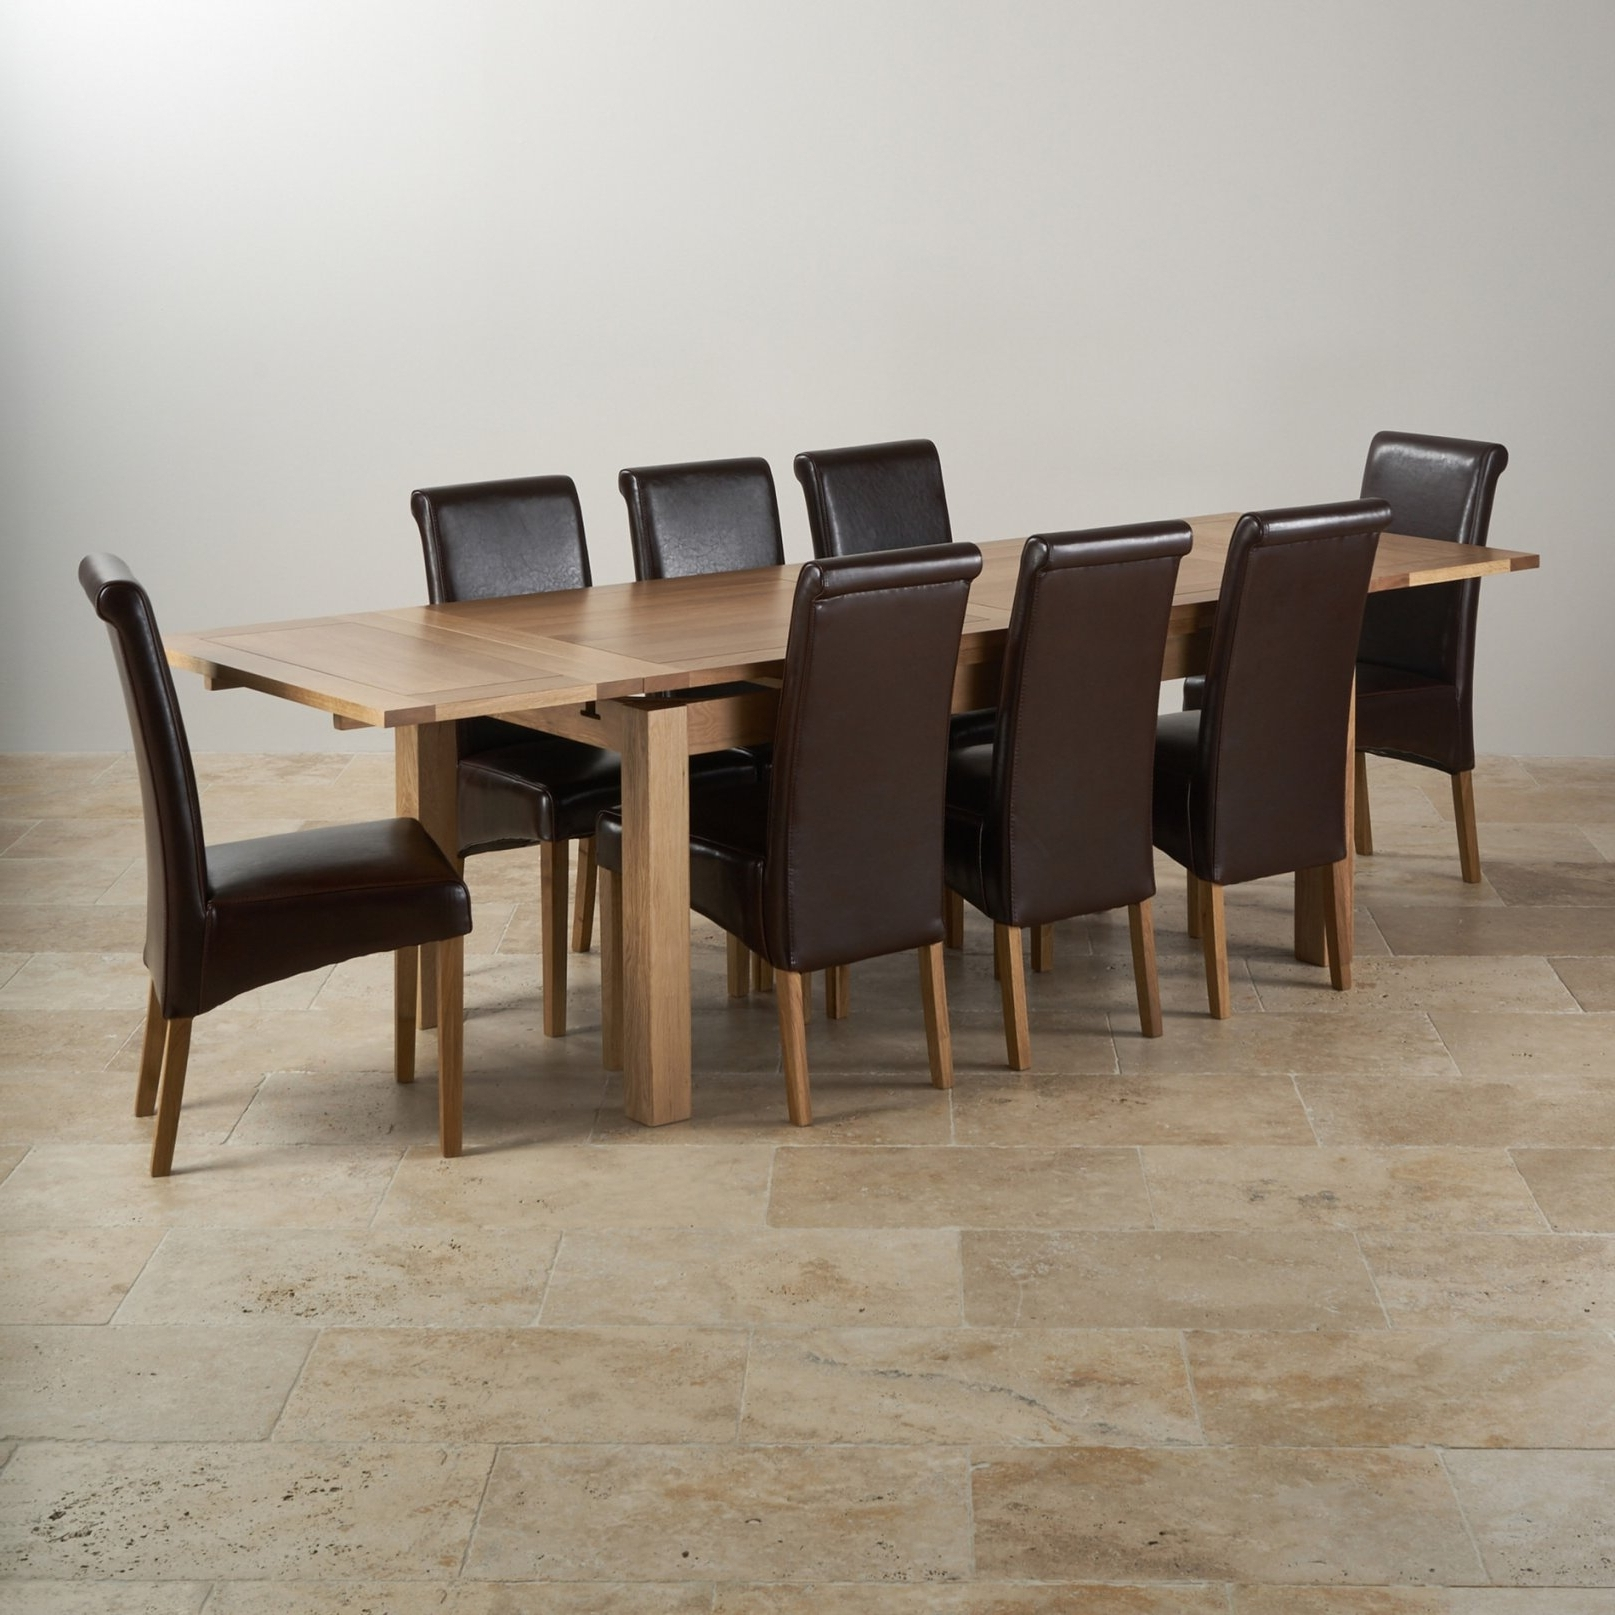 Popular Sophisticated Dorset Oak Dining Set 6Ft Table With 8 Chairs For For In Oak Dining Tables 8 Chairs (Gallery 17 of 25)